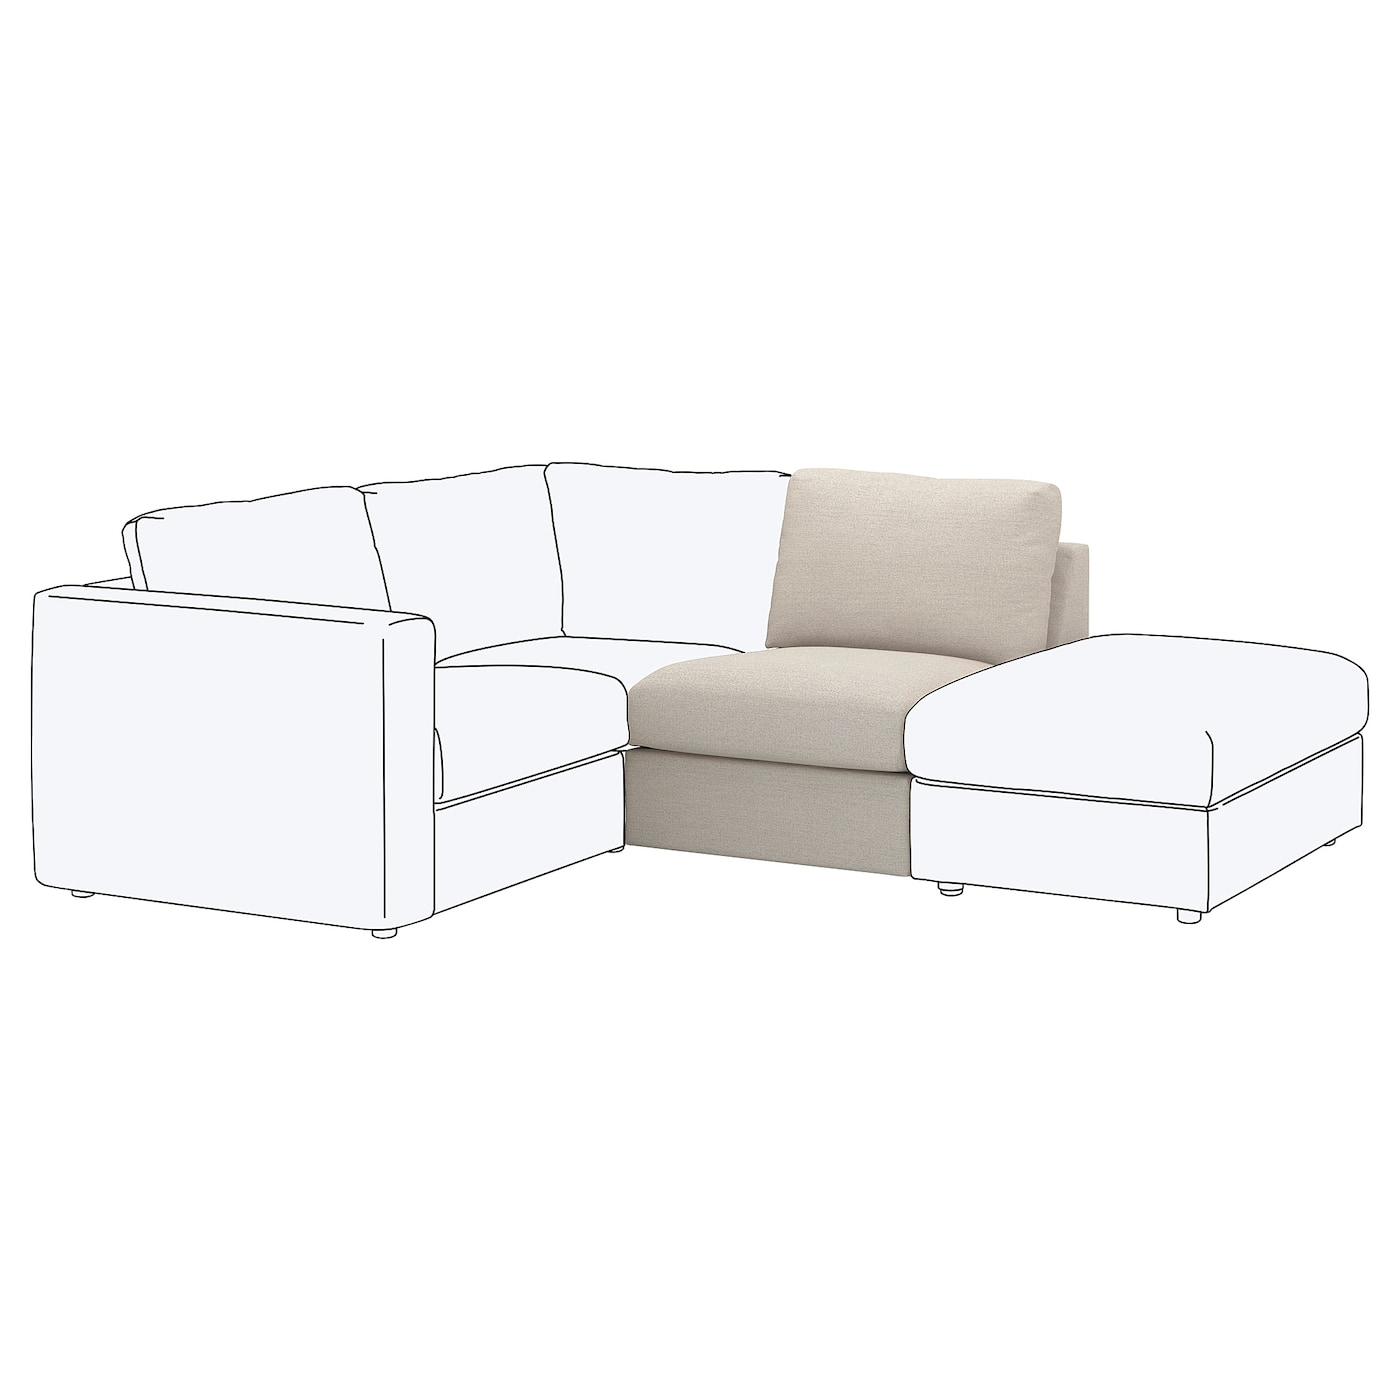 L Shapes Sofas - U Shaped Sofas